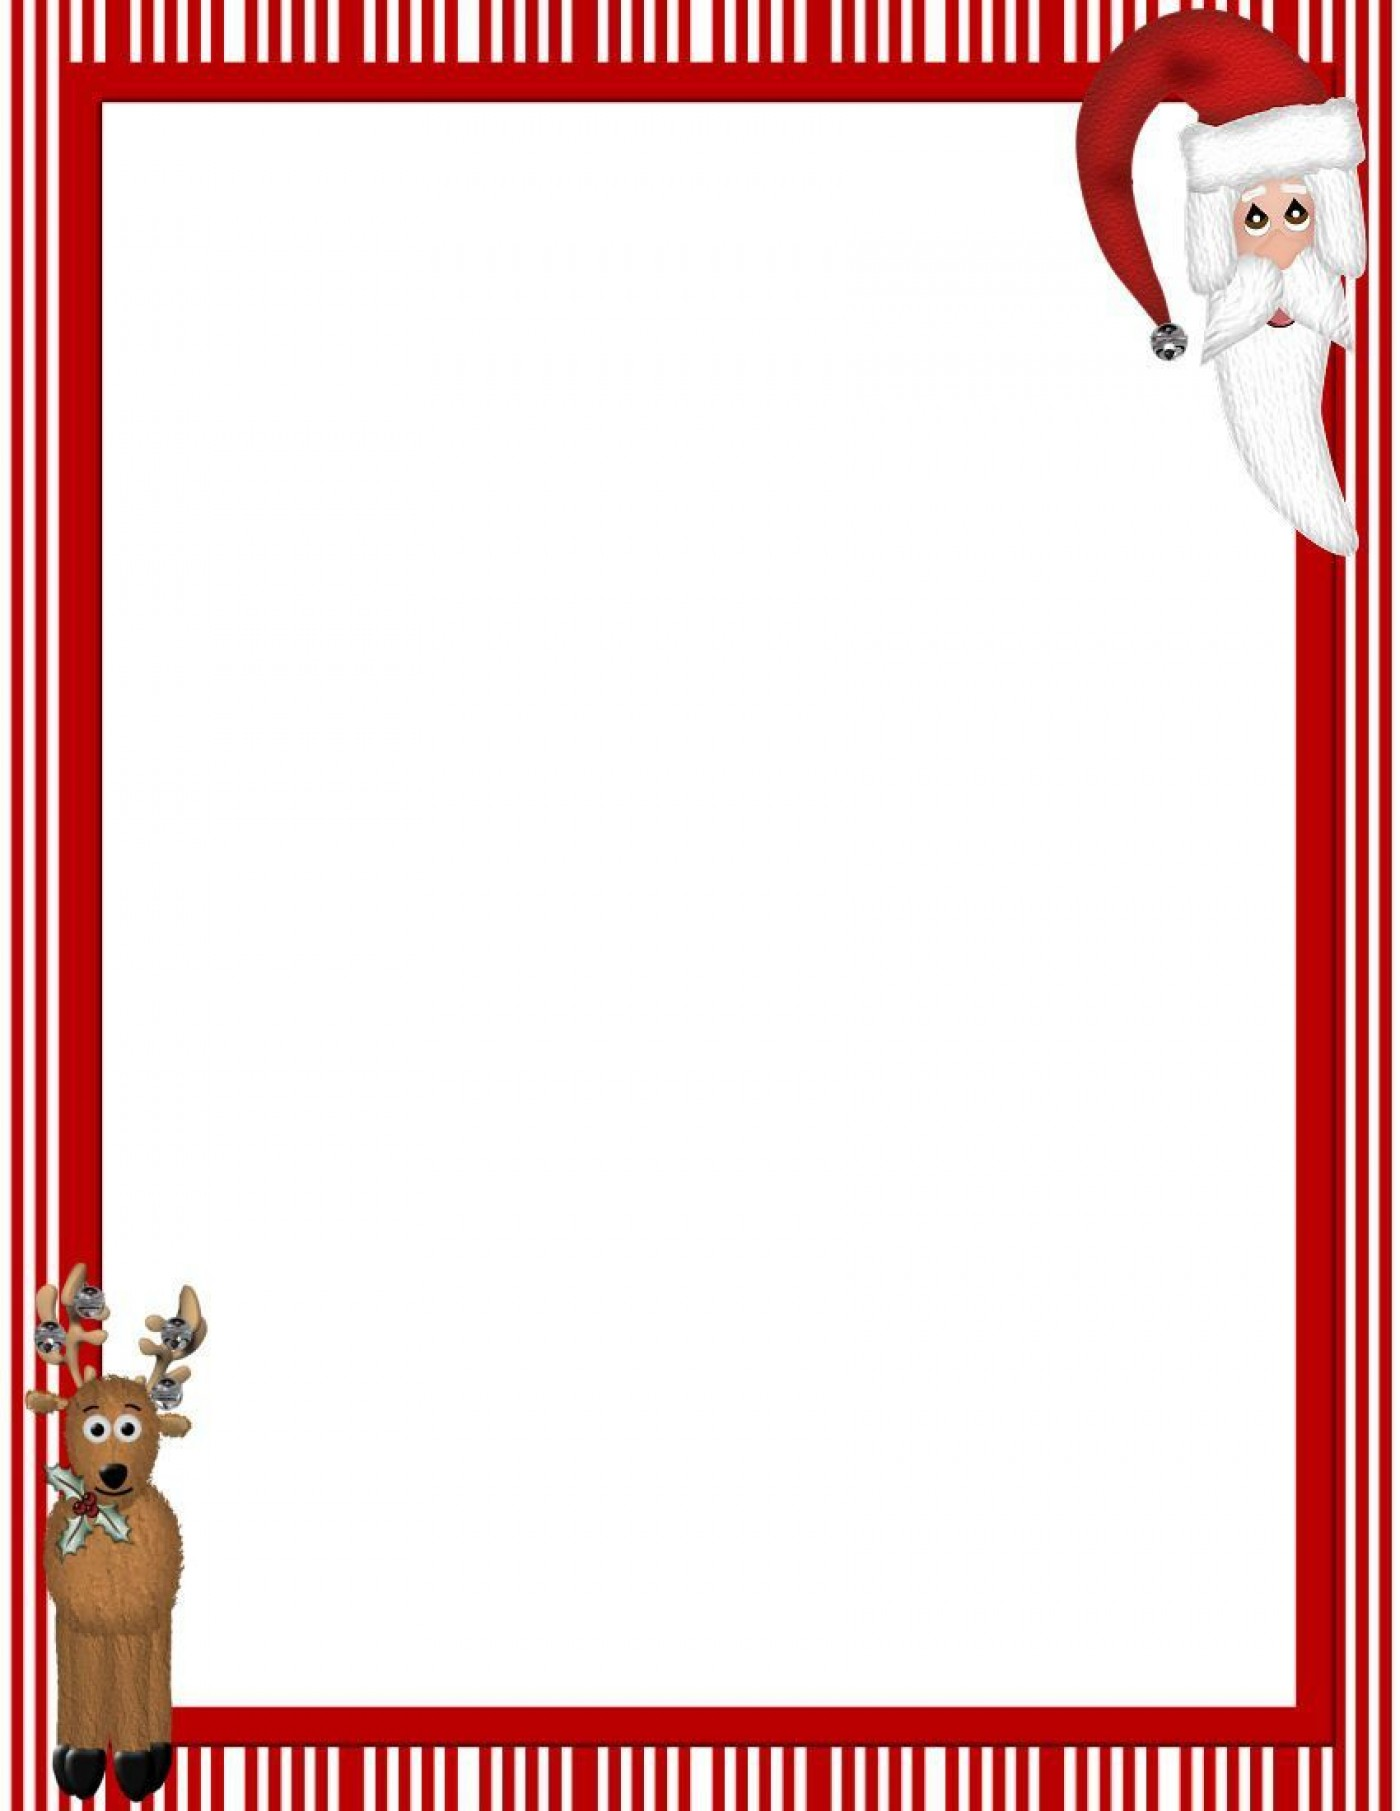 007 Excellent Christma Stationery Template Word Free High Resolution  Religiou For Downloadable1400